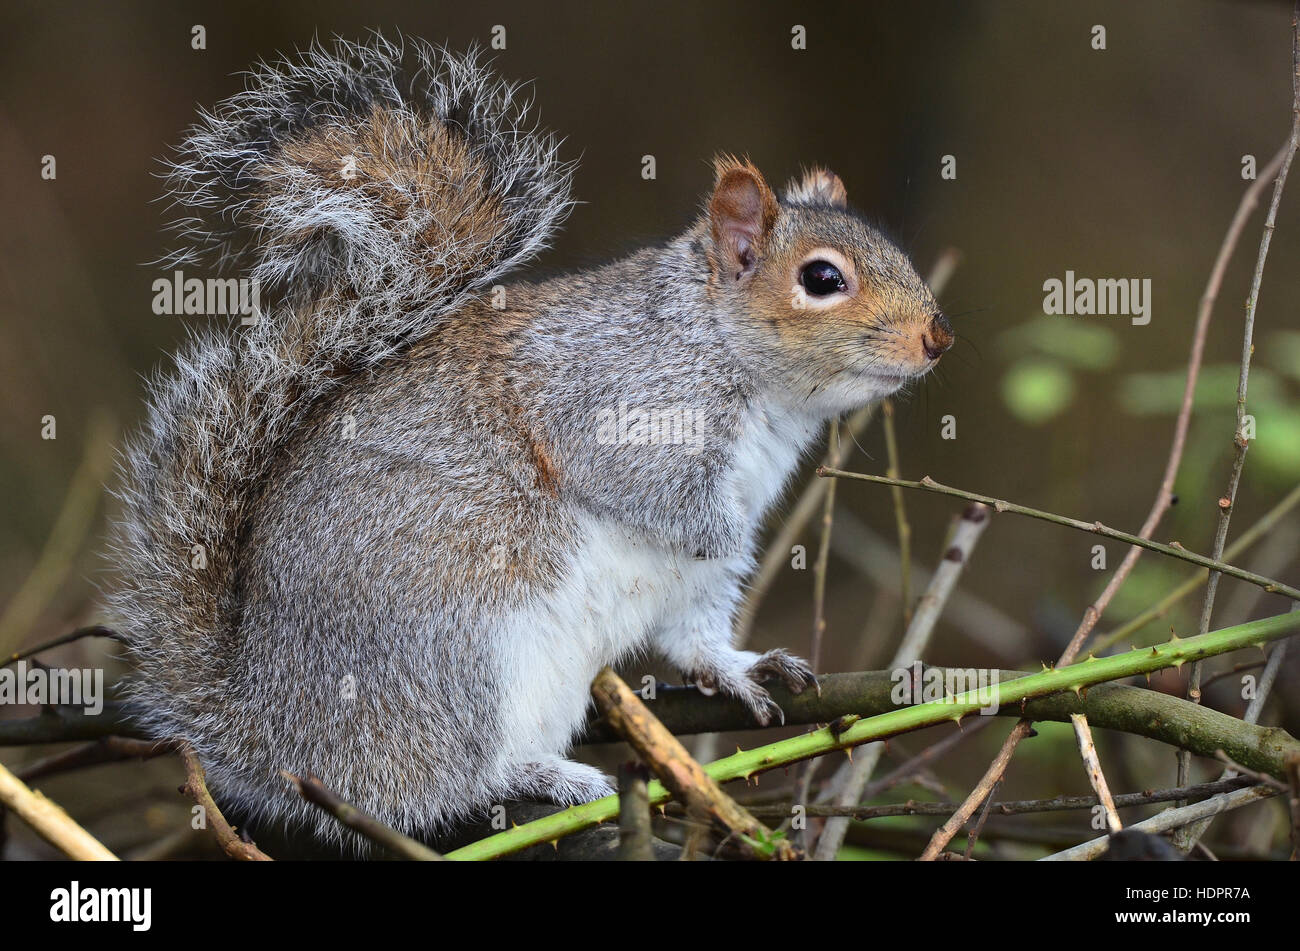 A grey squirrel sitting in a hedgerow UK - Stock Image